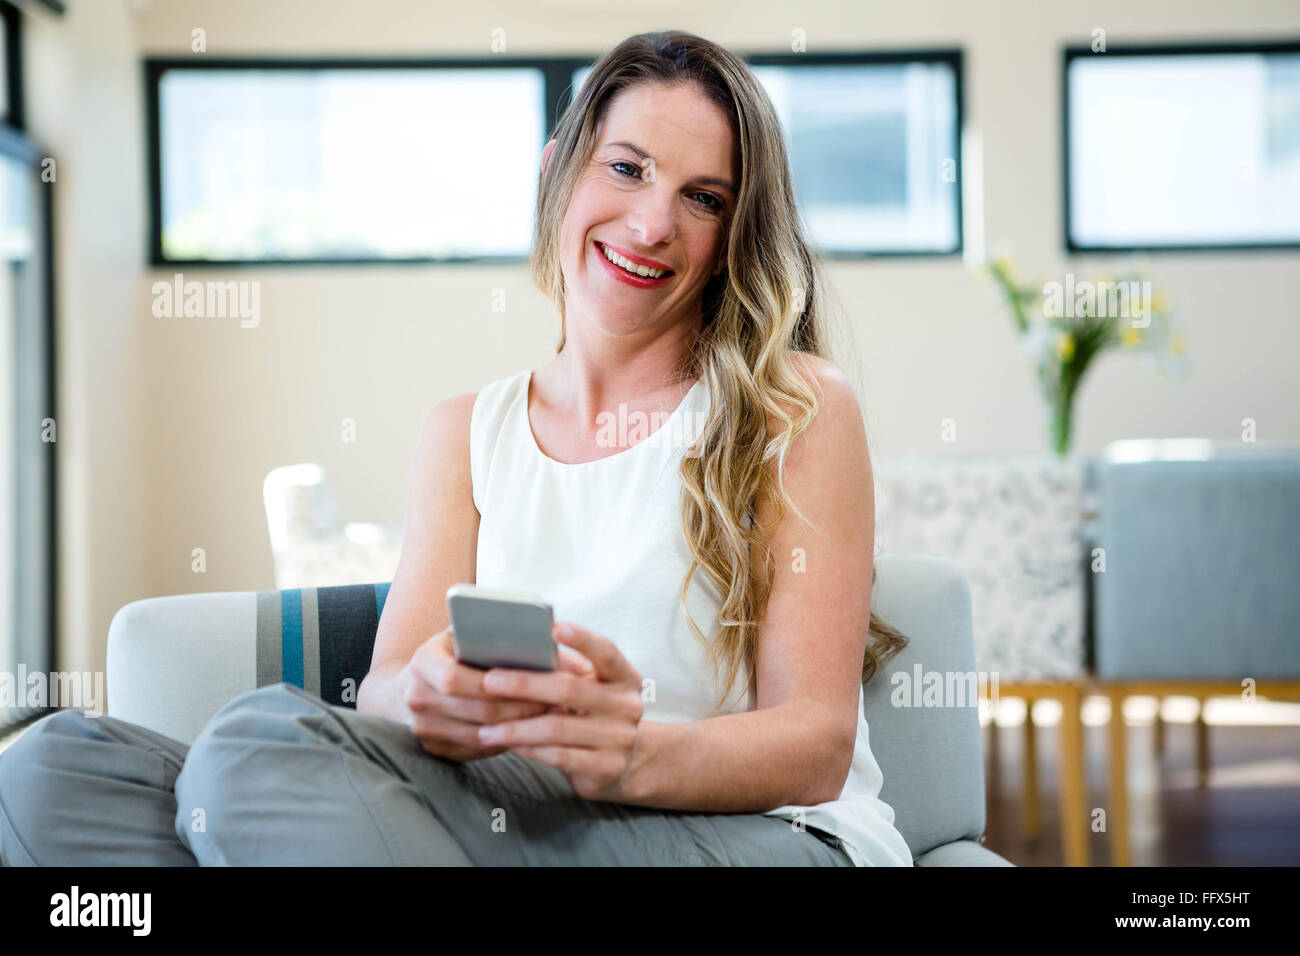 smiling woman on her mobile phone - Stock Image